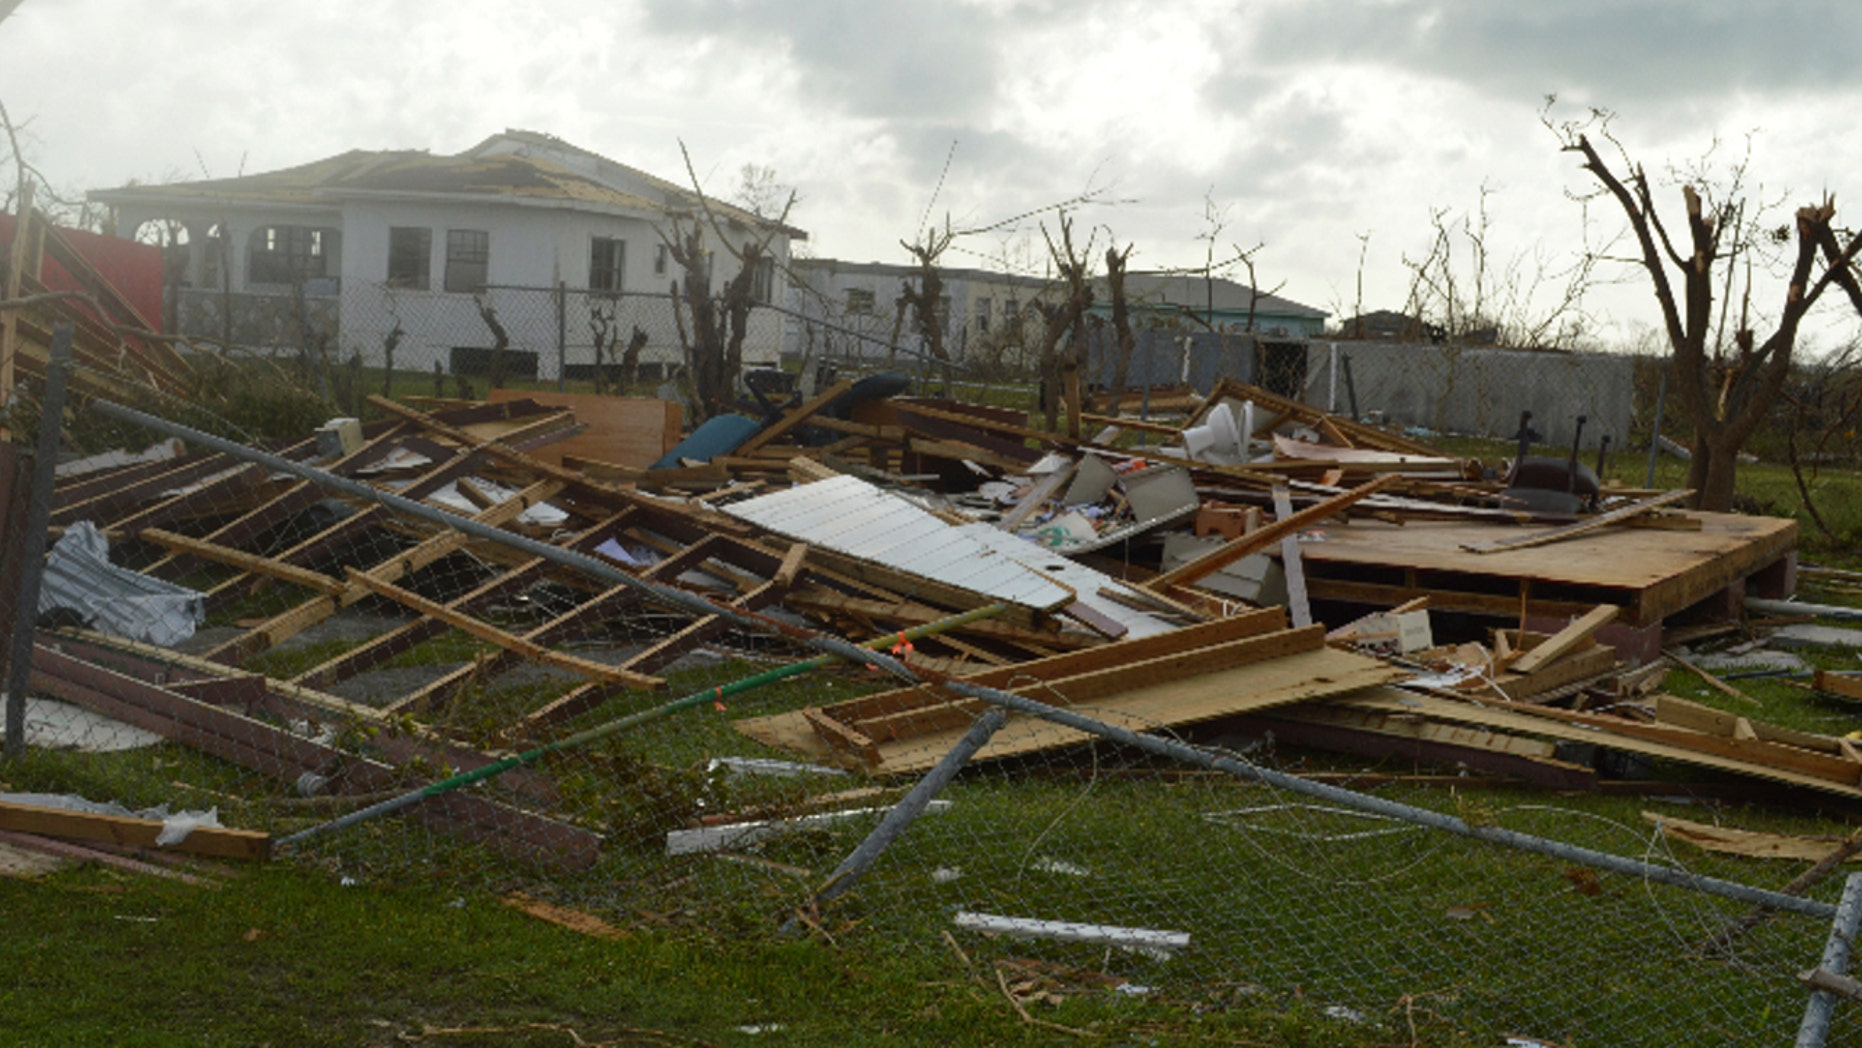 The island of Barbuda saw extensive damage from Hurricane Irma, as this photo shows, Sept. 7, 2017.